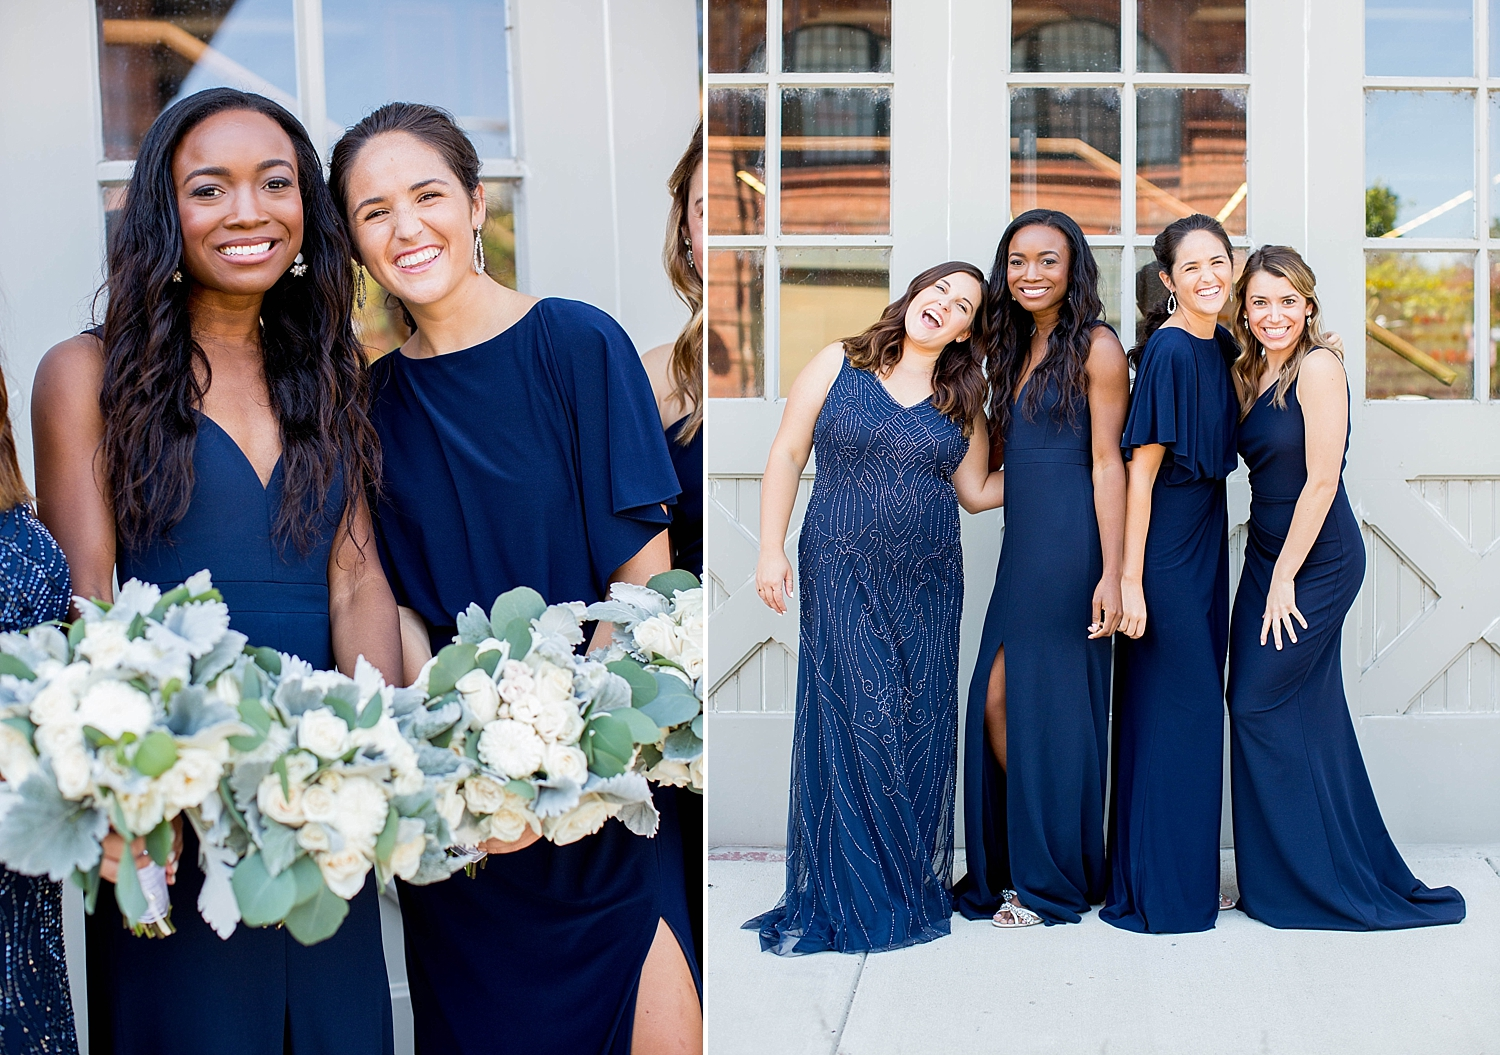 BHLDN Bridesmaids Dresses Campaign Philadelphia New Jersey Wedding Fashion Photography by Kelee Bovelle_0024.jpg